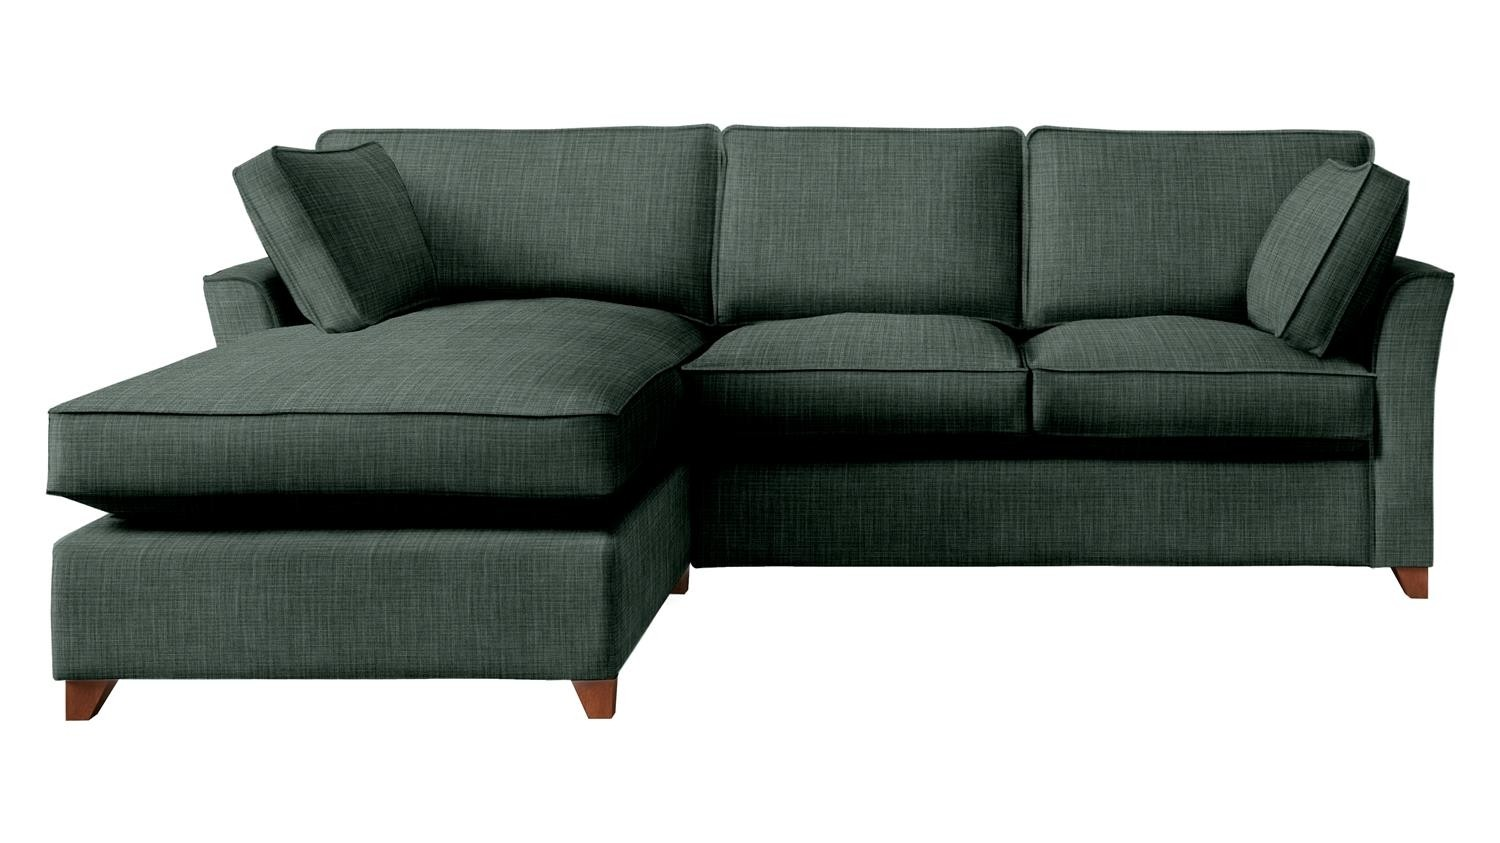 The Shalbourne 5 Seater Left Chaise Sofa Bed